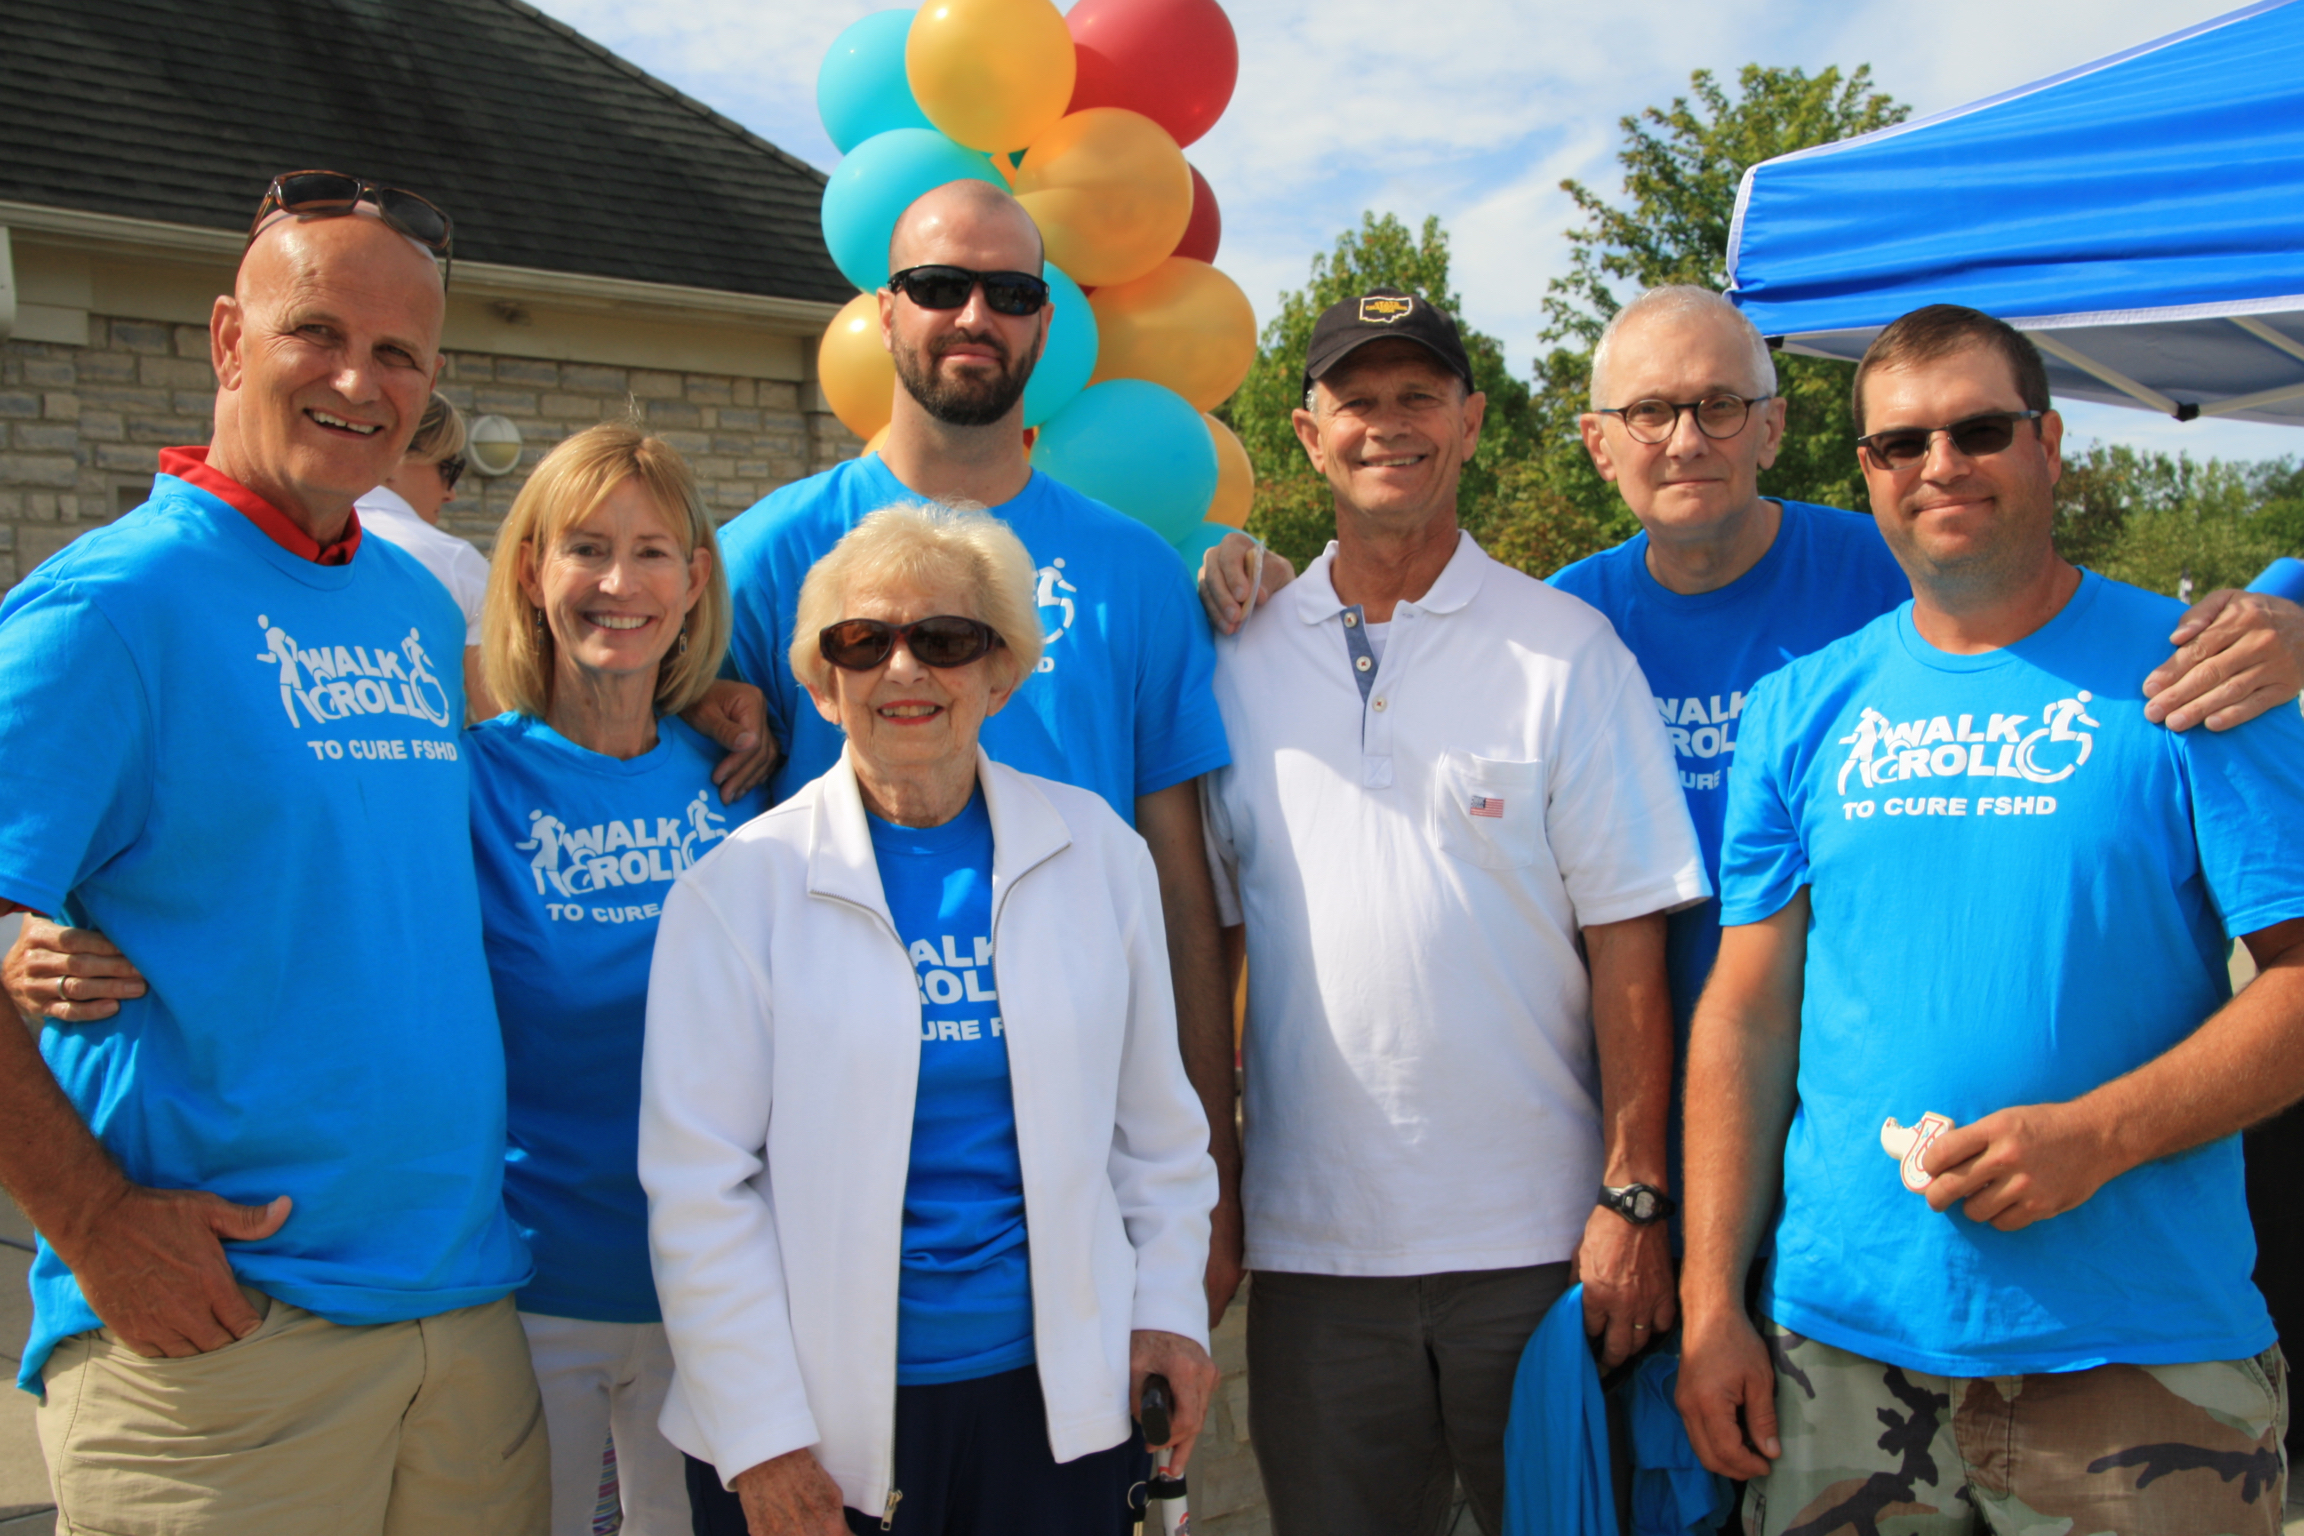 Columbus Walk & Roll to Cure FSHD